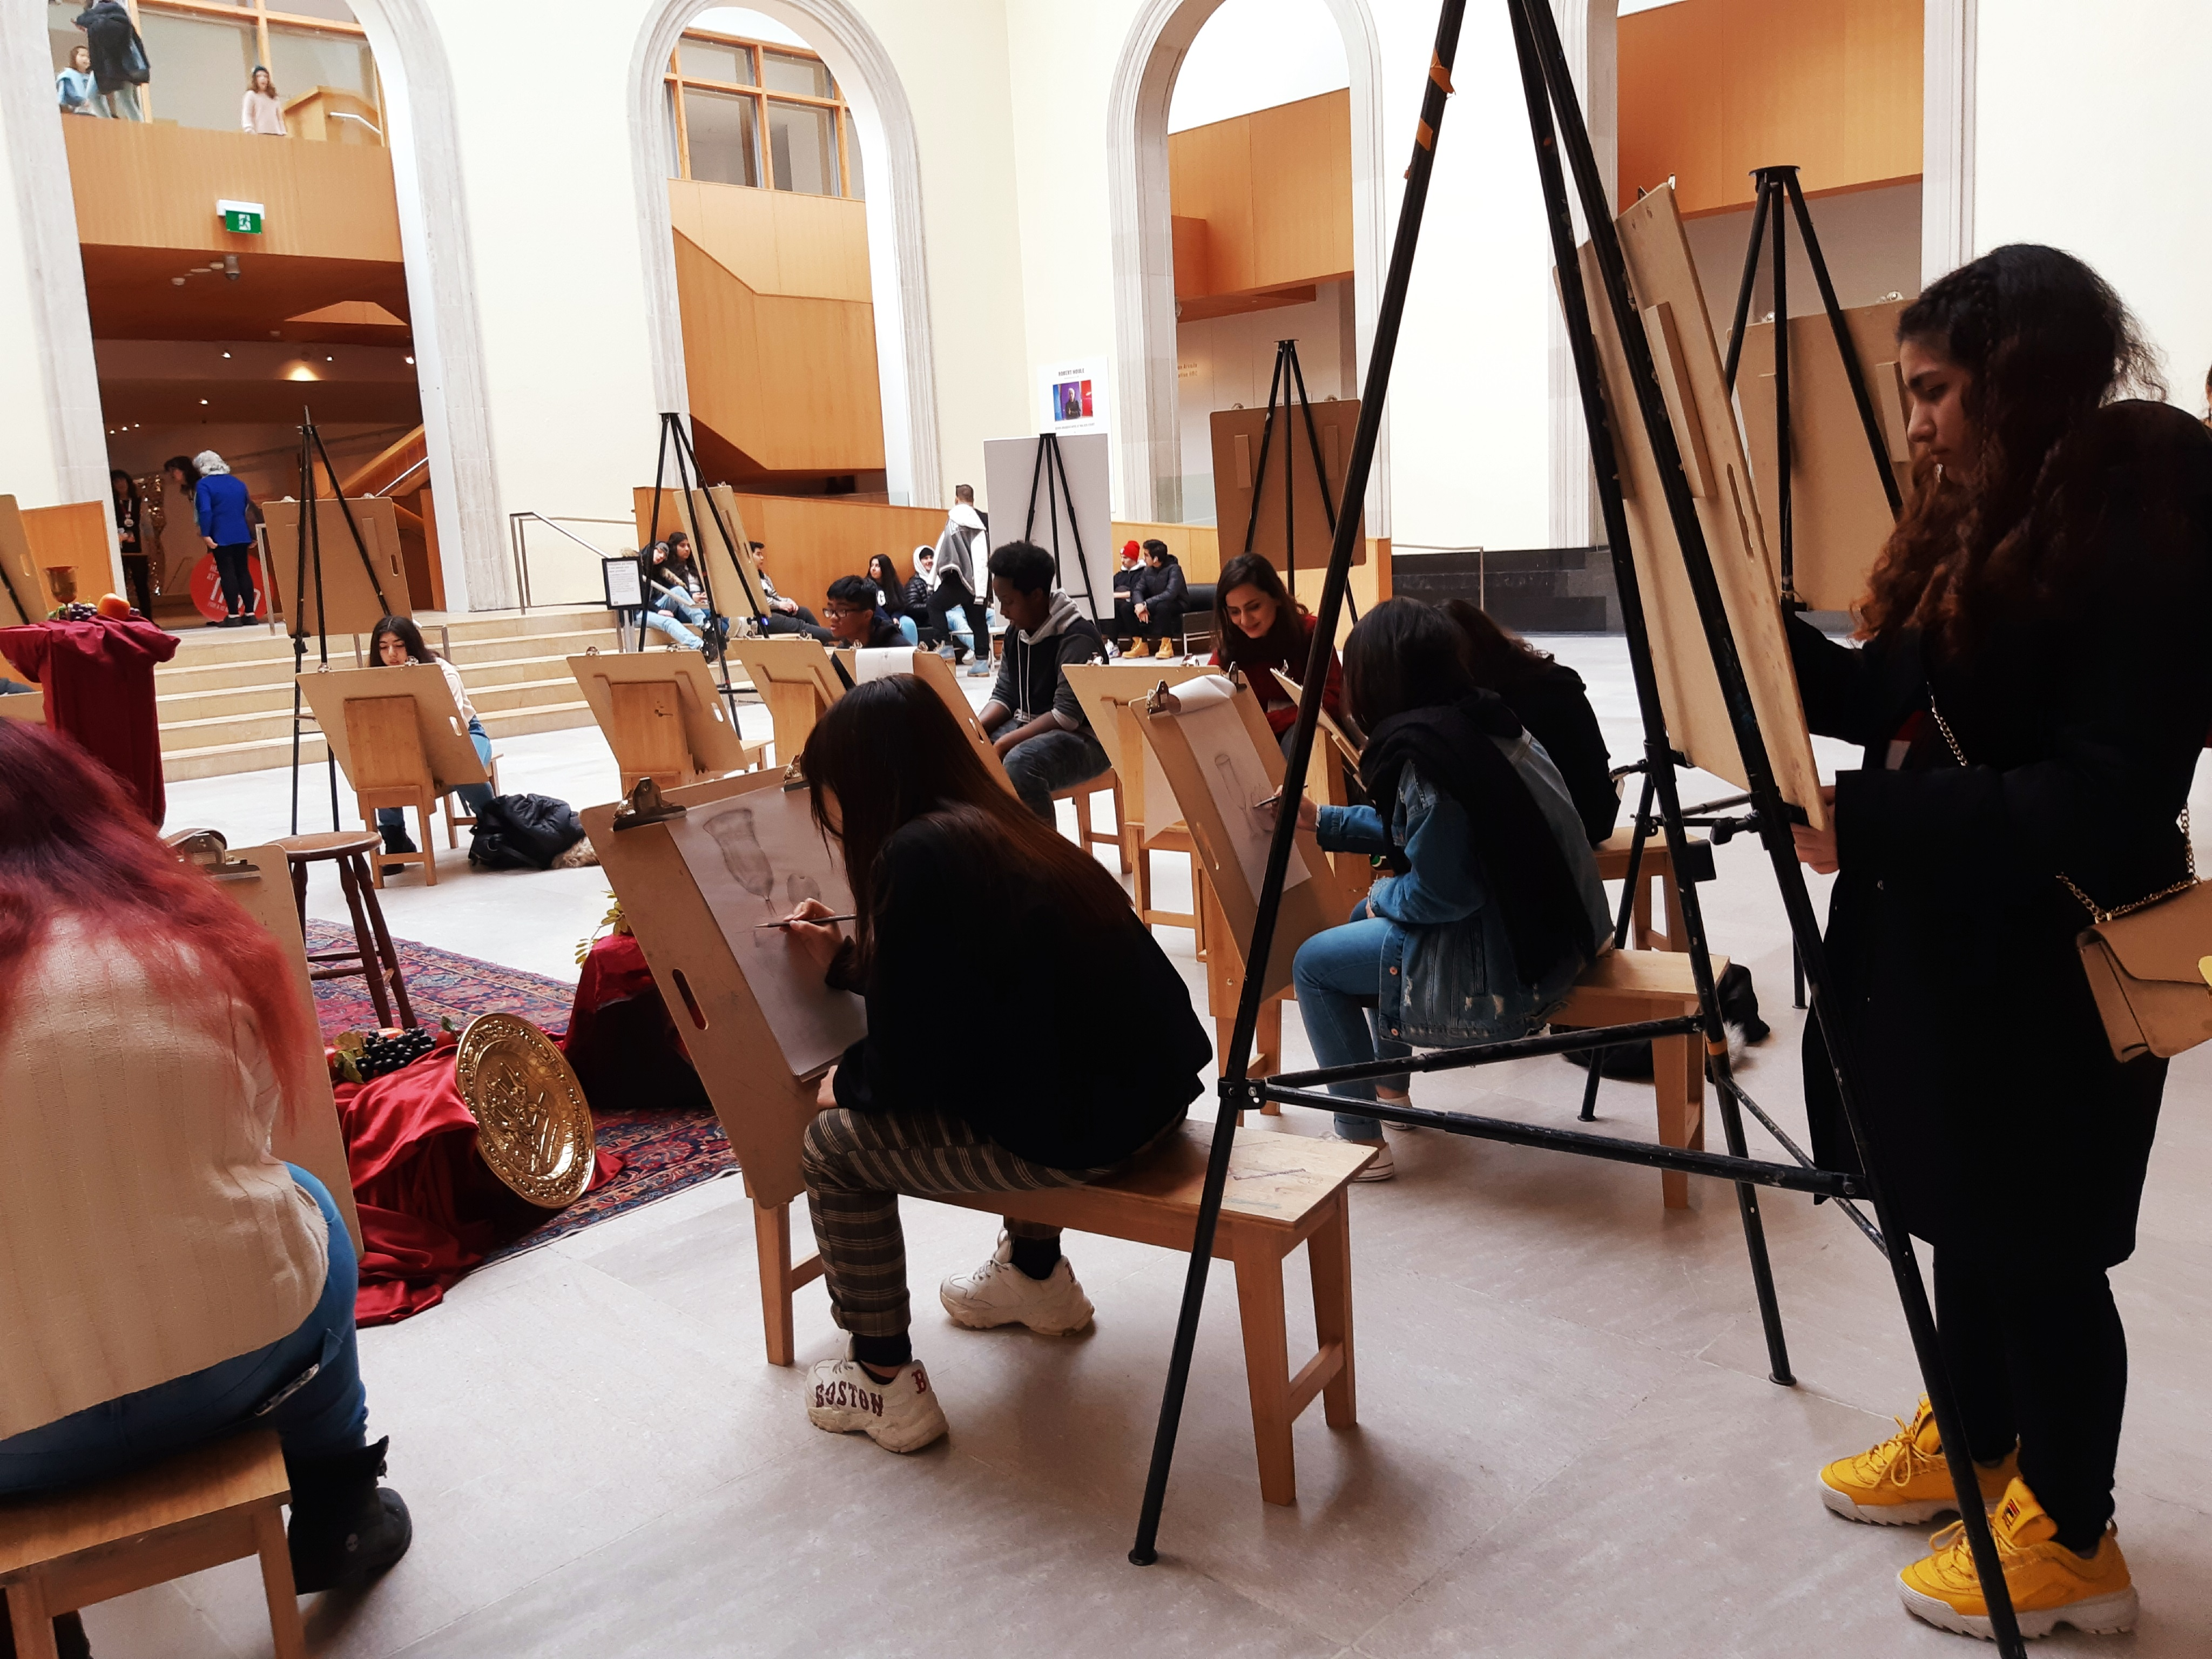 Pop-up Art Class at the AGO open gallery